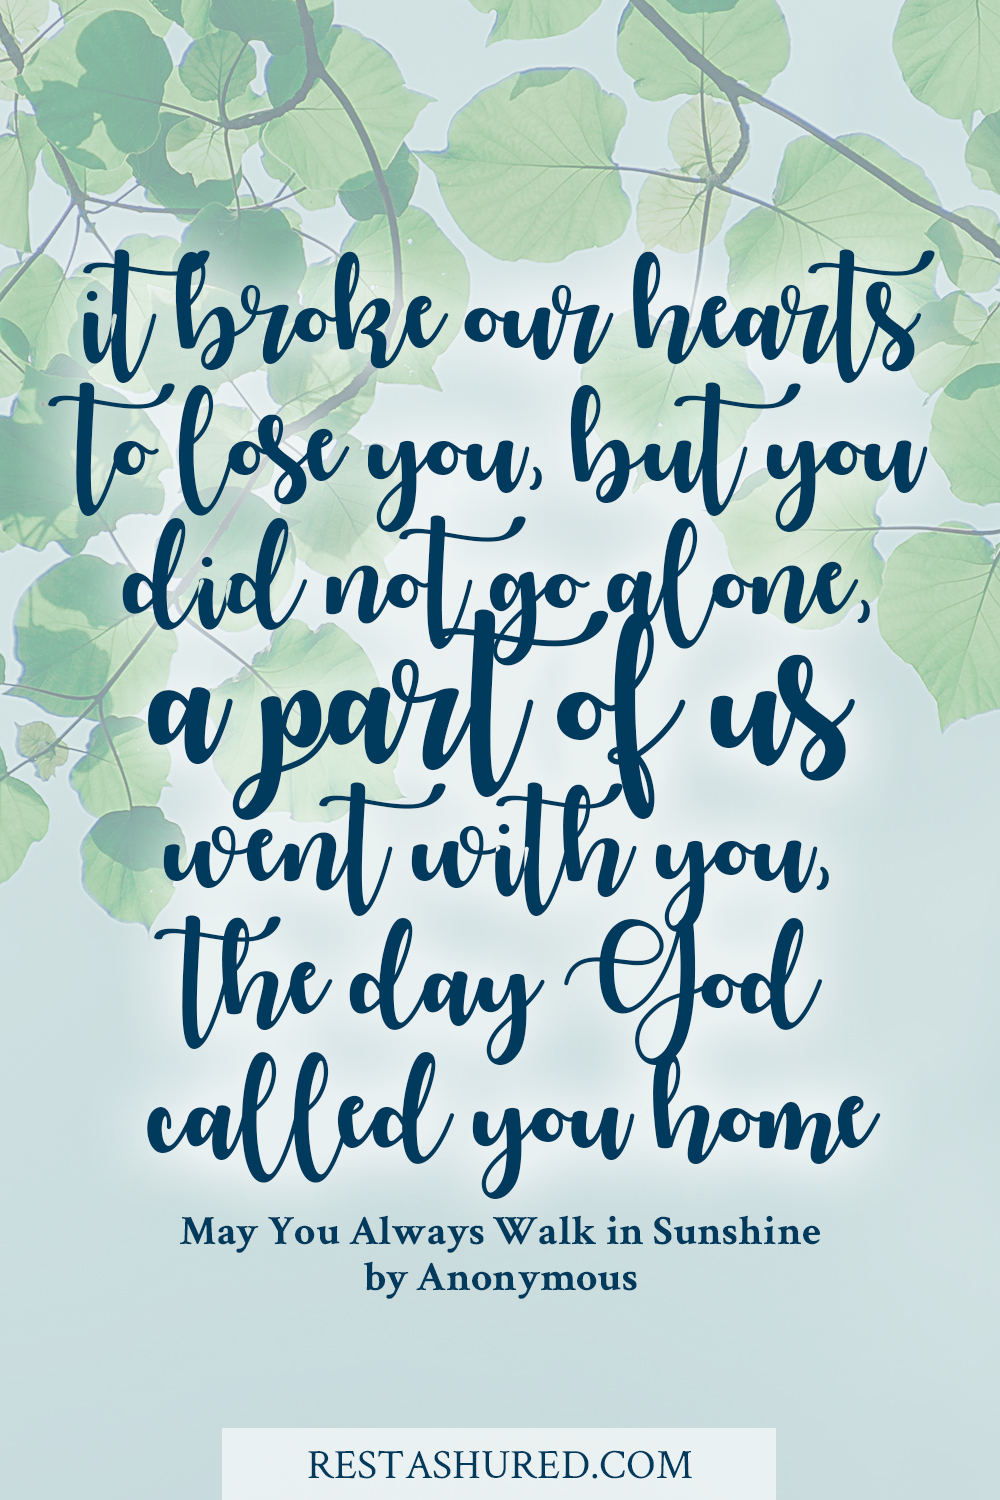 Quote stating, it broke our hearts to lose you, but you did not go alone, a part of us went with you, the day God called you home.